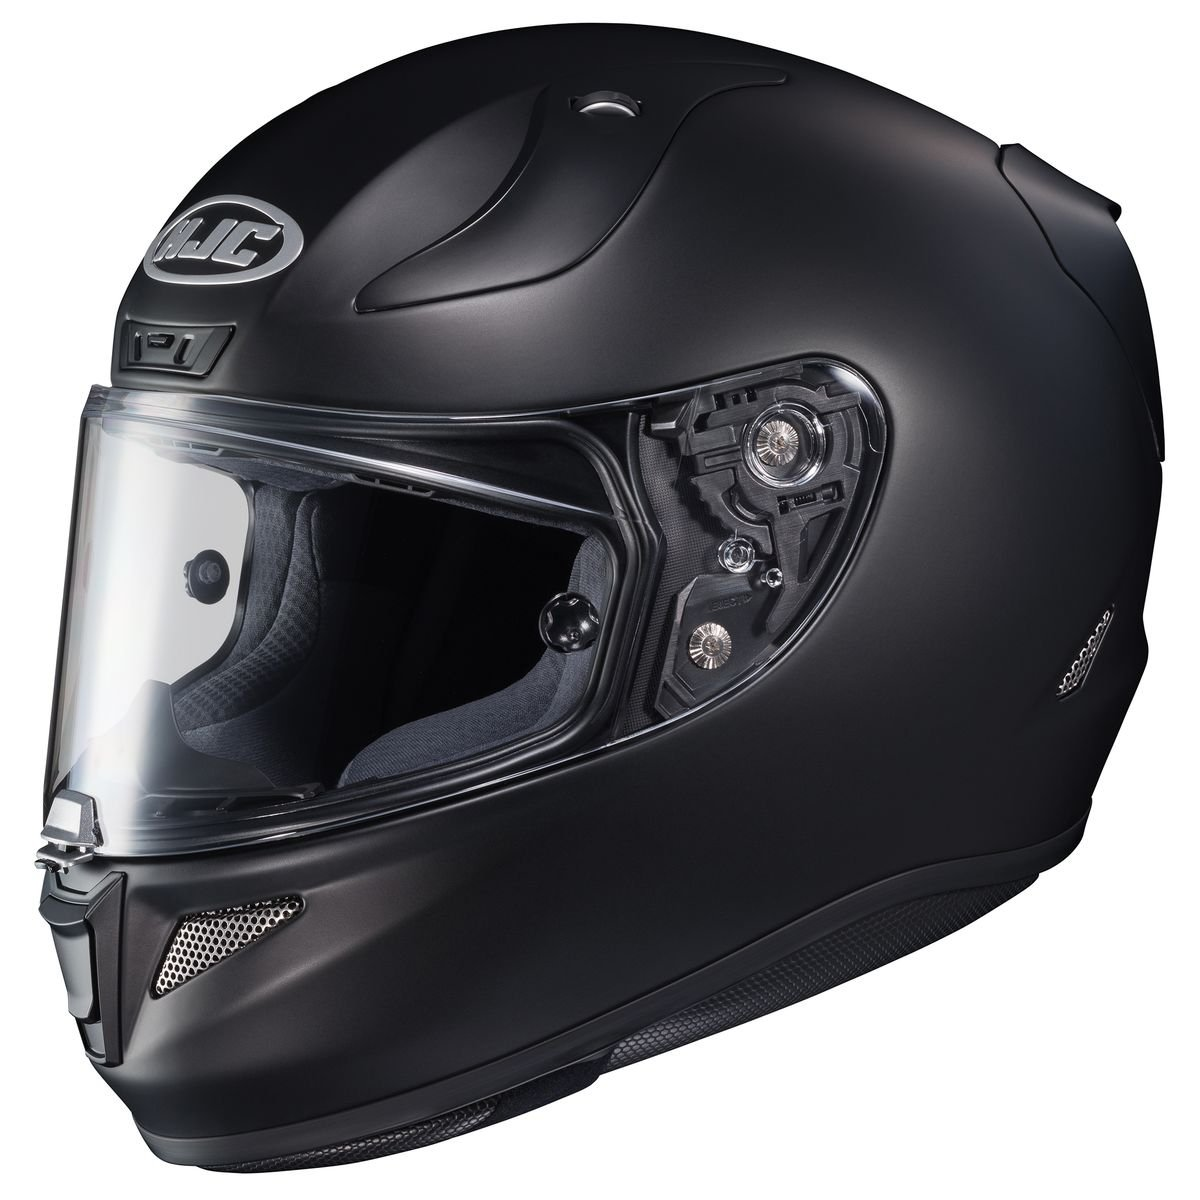 HJC Helmets 1650-603 Black Medium RPHA-11 Pro Helmet